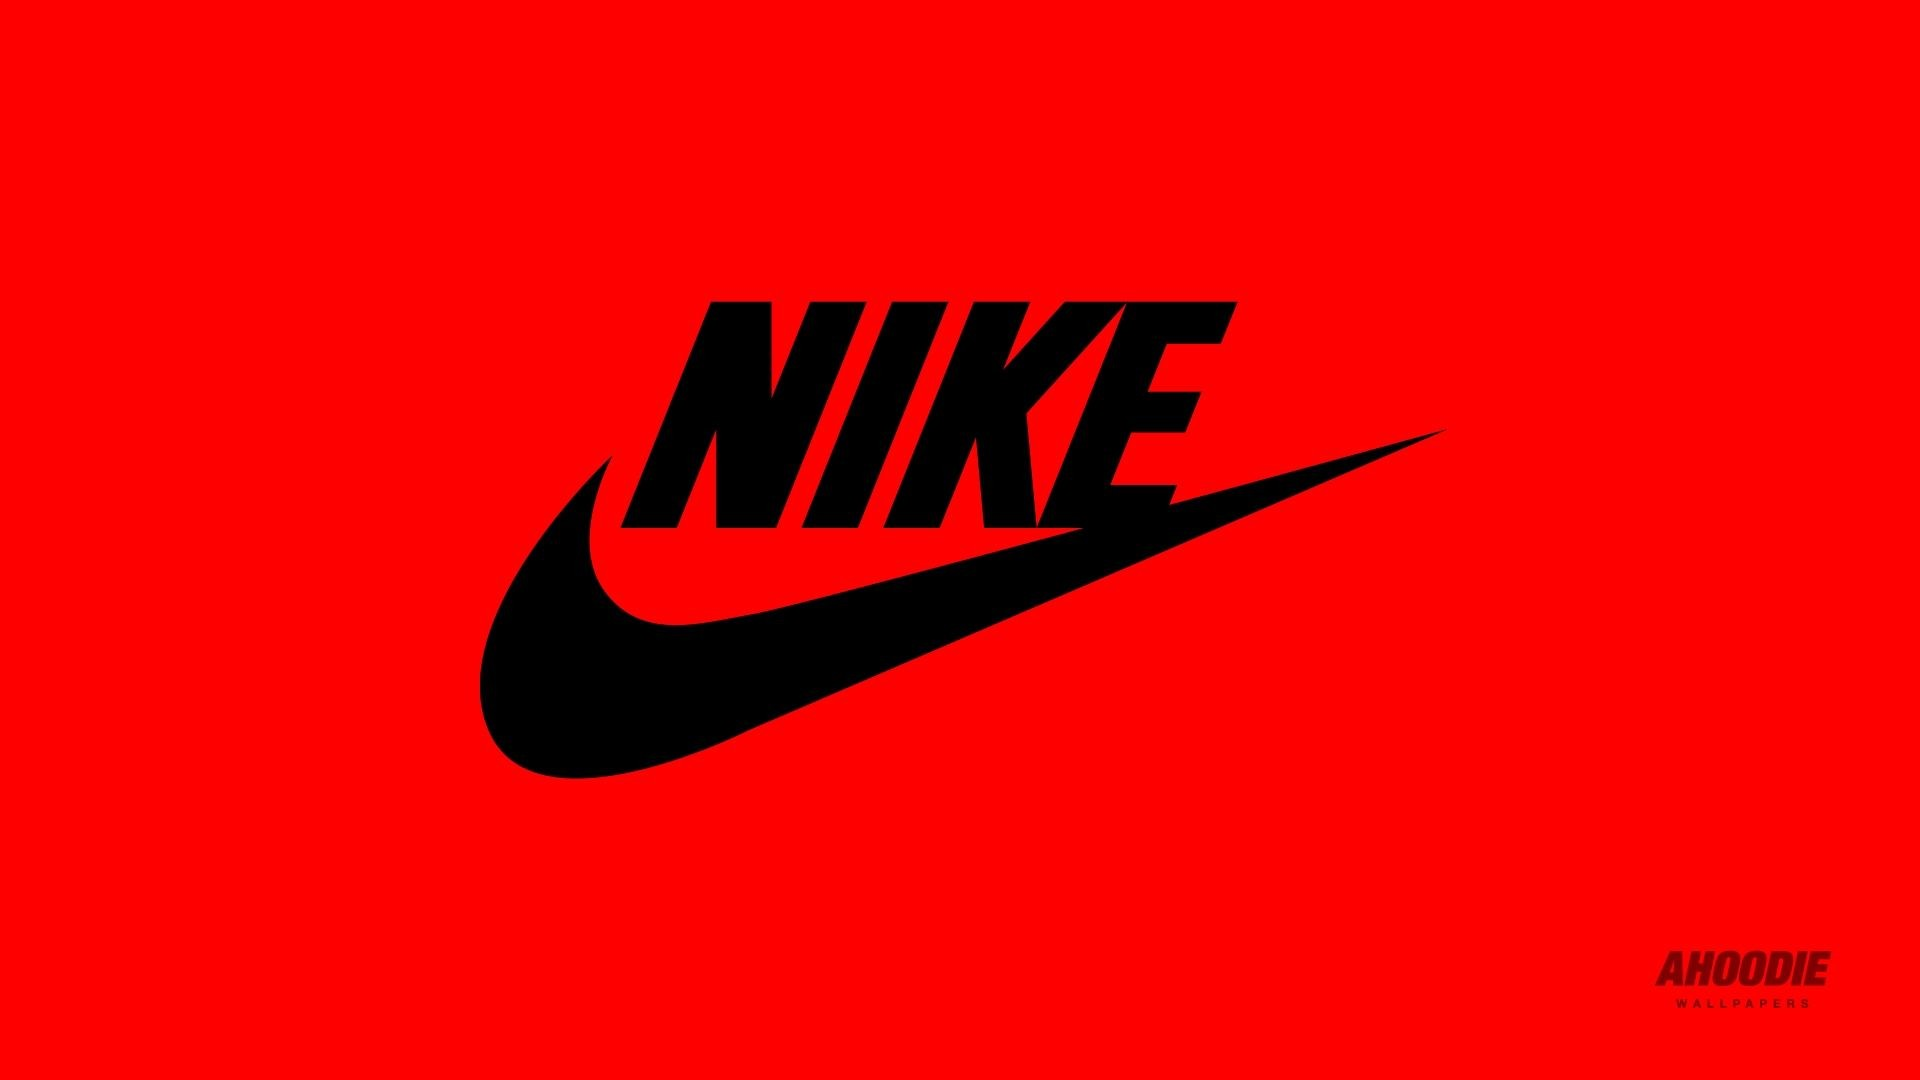 1920x1080 Nike Just Do It Logo Wallpaper For Android #6937 Wallpaper High ... -